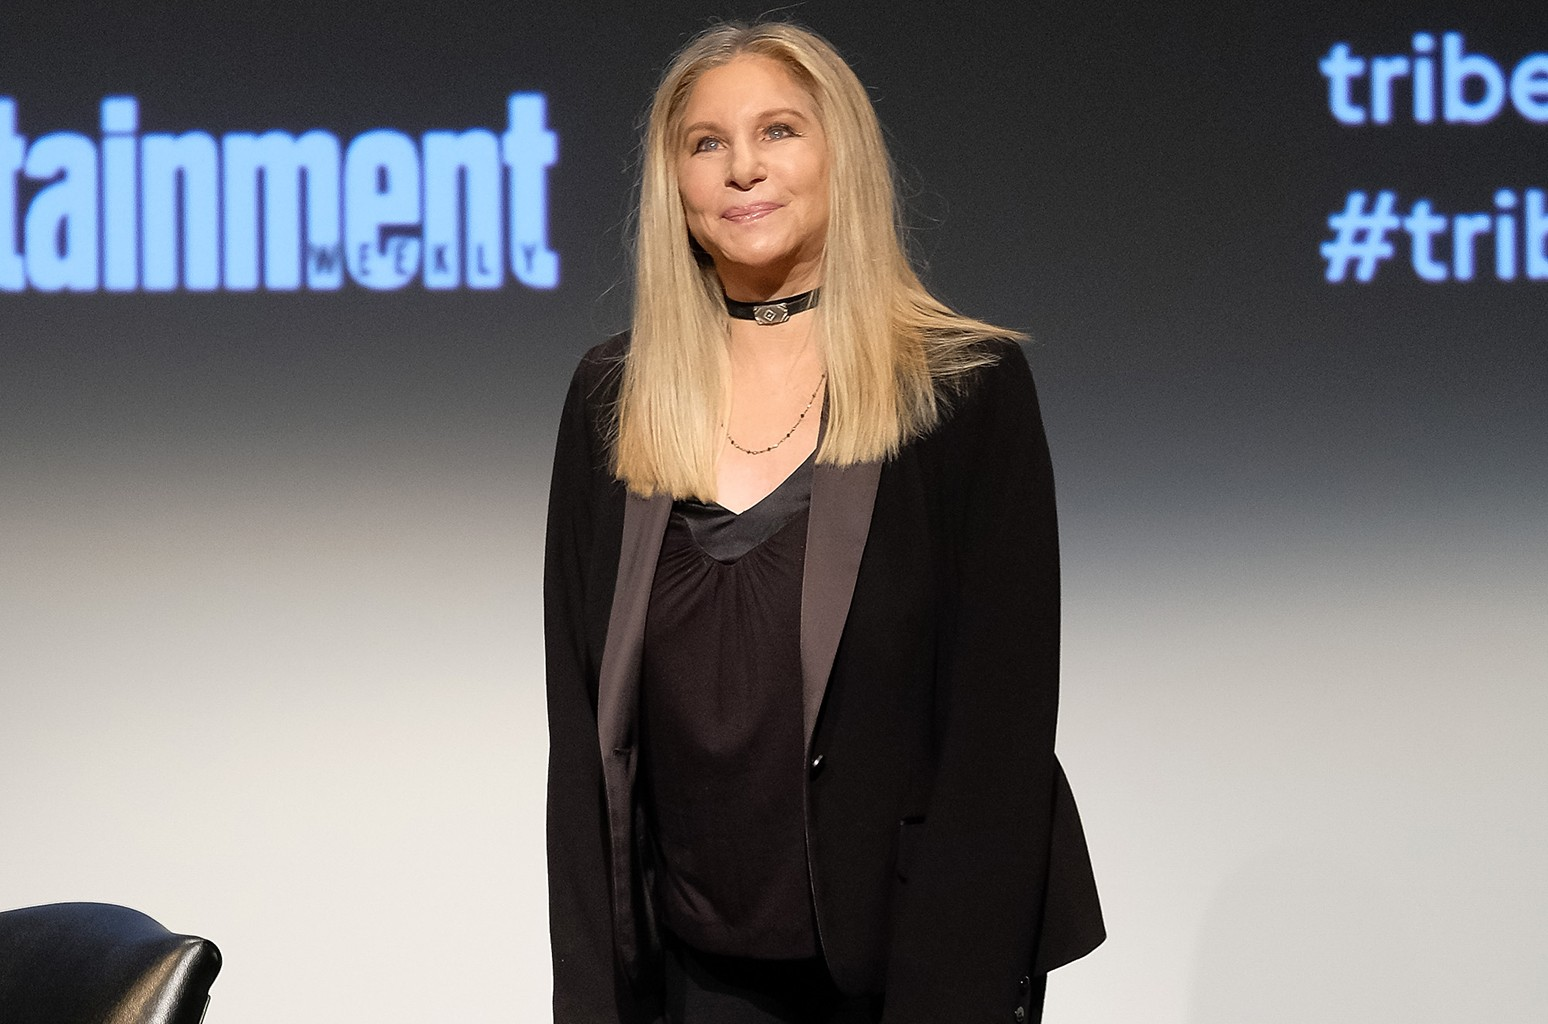 Barbra Streisand attends Tribeca Talks: Barbra Streisand with Robert Rodriguez during the 2017 Tribeca Film Festival at BMCC Tribeca PAC on April 29, 2017 in New York City.